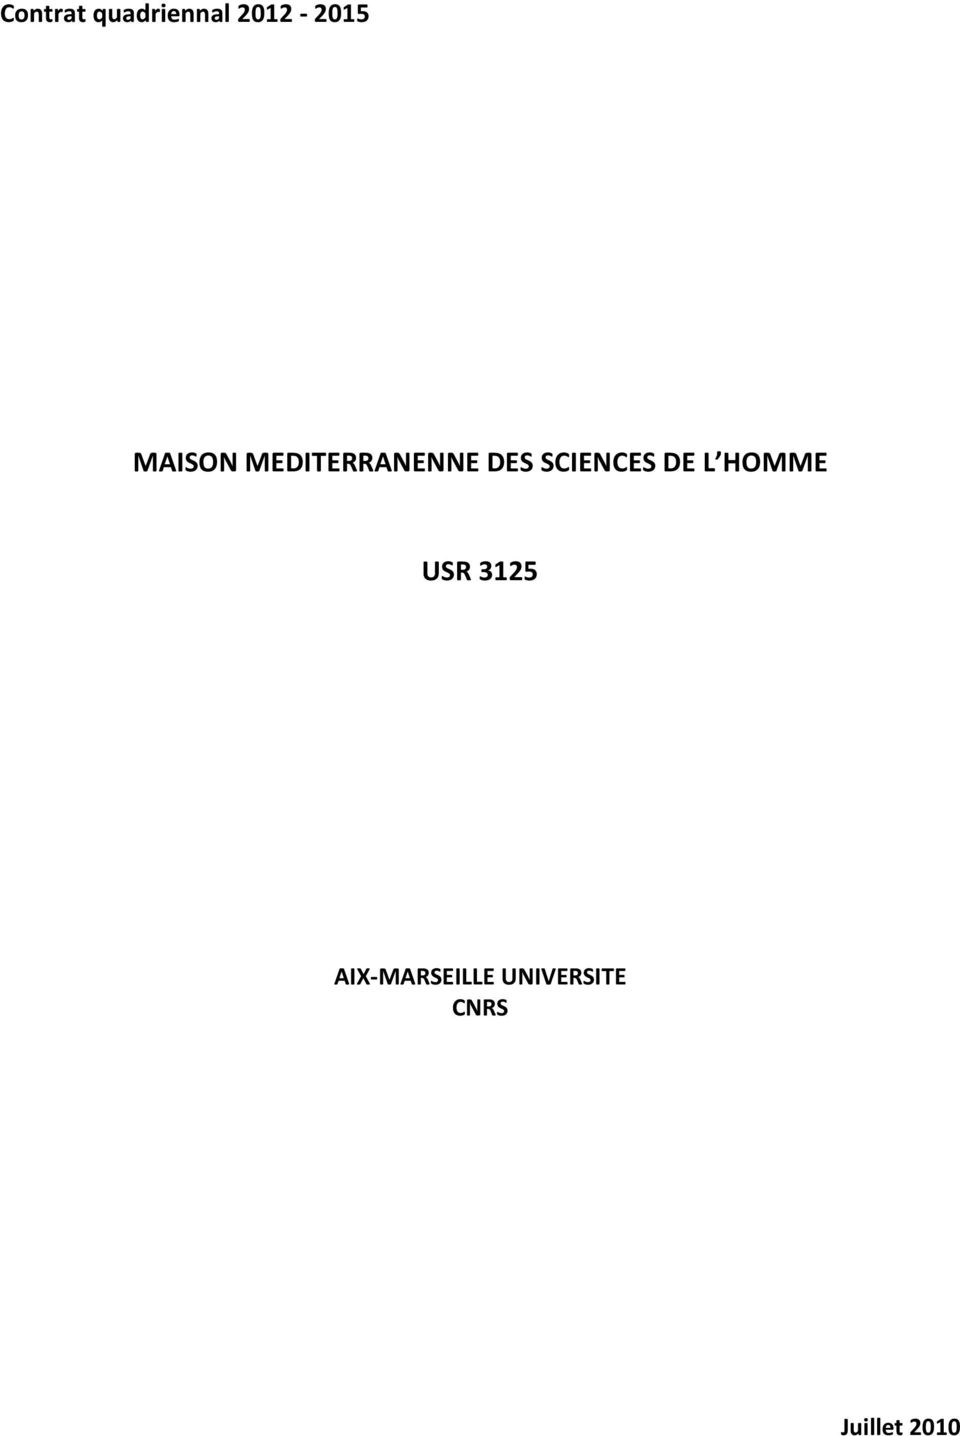 SCIENCES DE L HOMME USR 3125